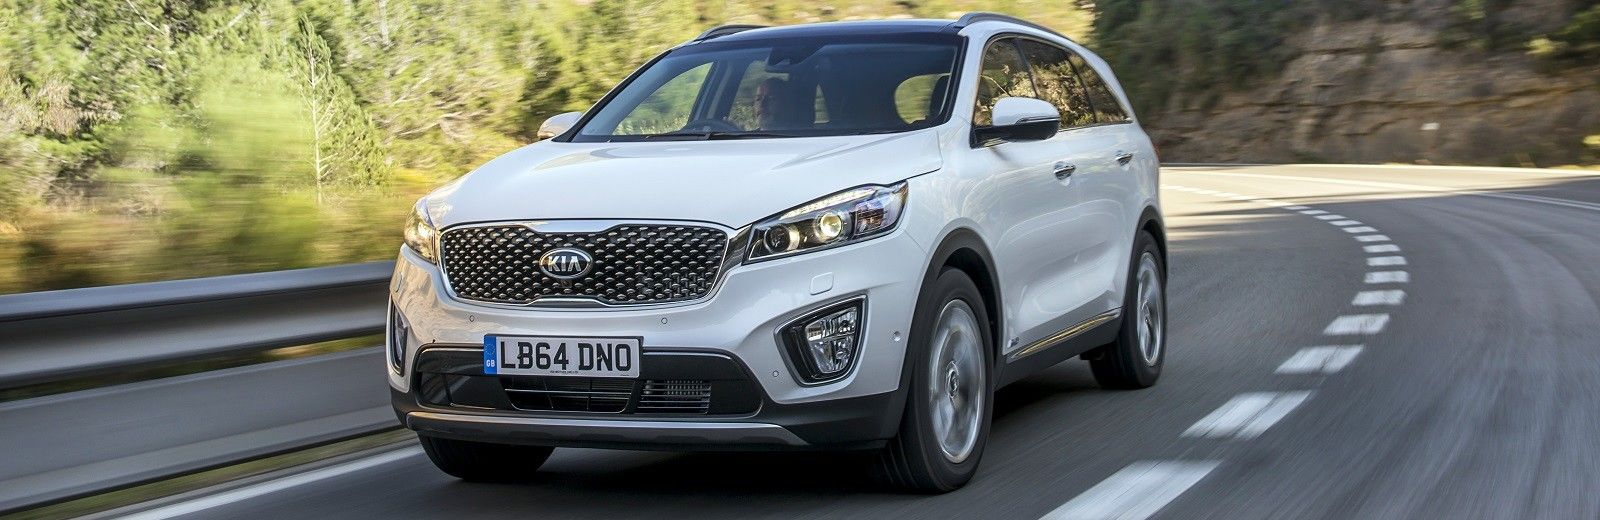 Nice The Sorento In KX 2 Trim Is Already A Very Well Equipped Car. A Full  Leather Interior, A Reversing Camera And A Seven Inch Touchscreen  Navigation System Are ...